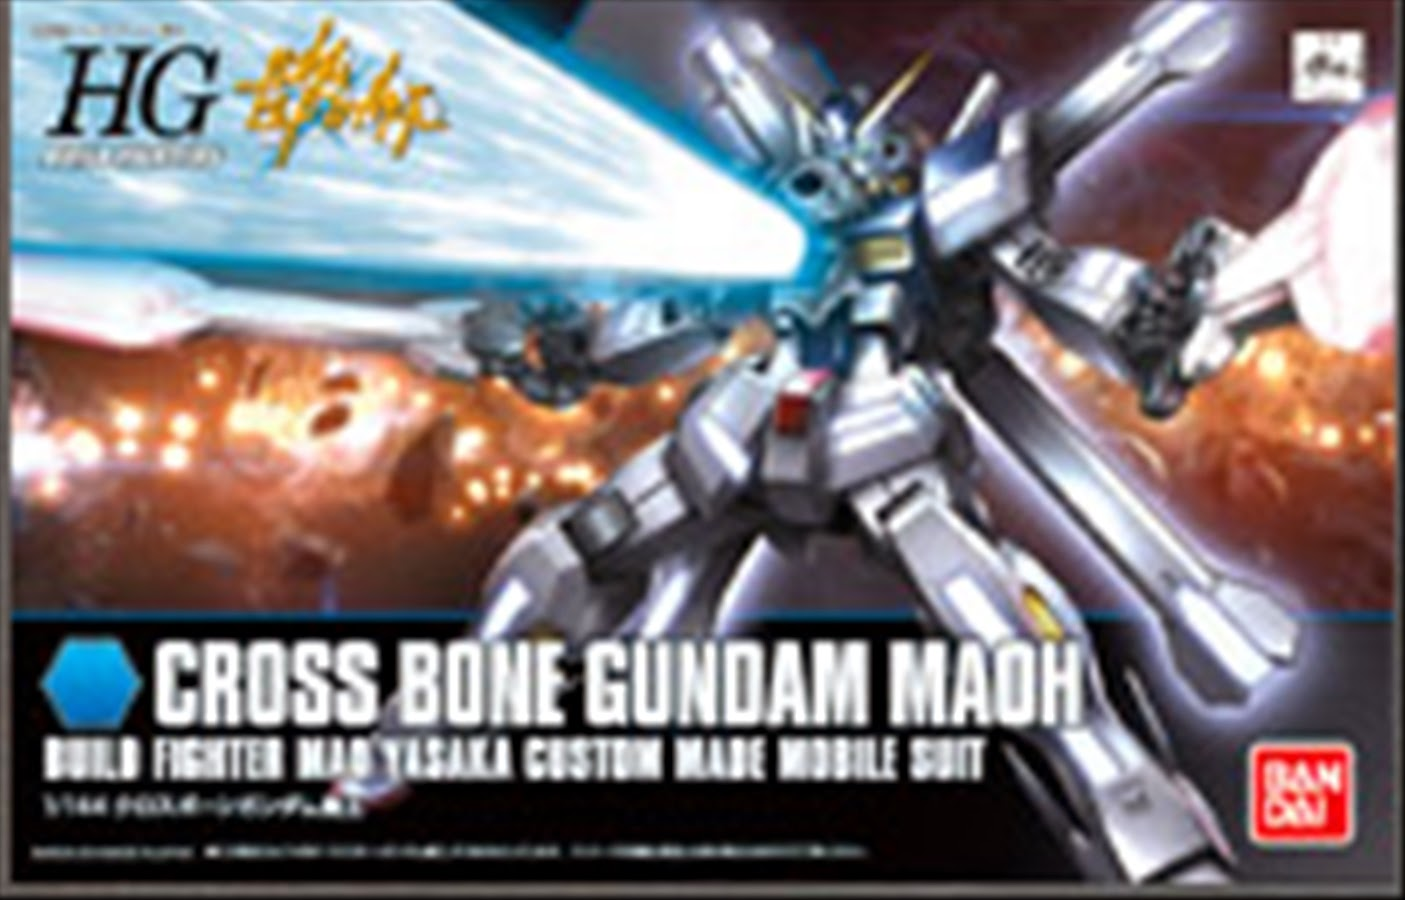 box art of crossbone gundam maoh